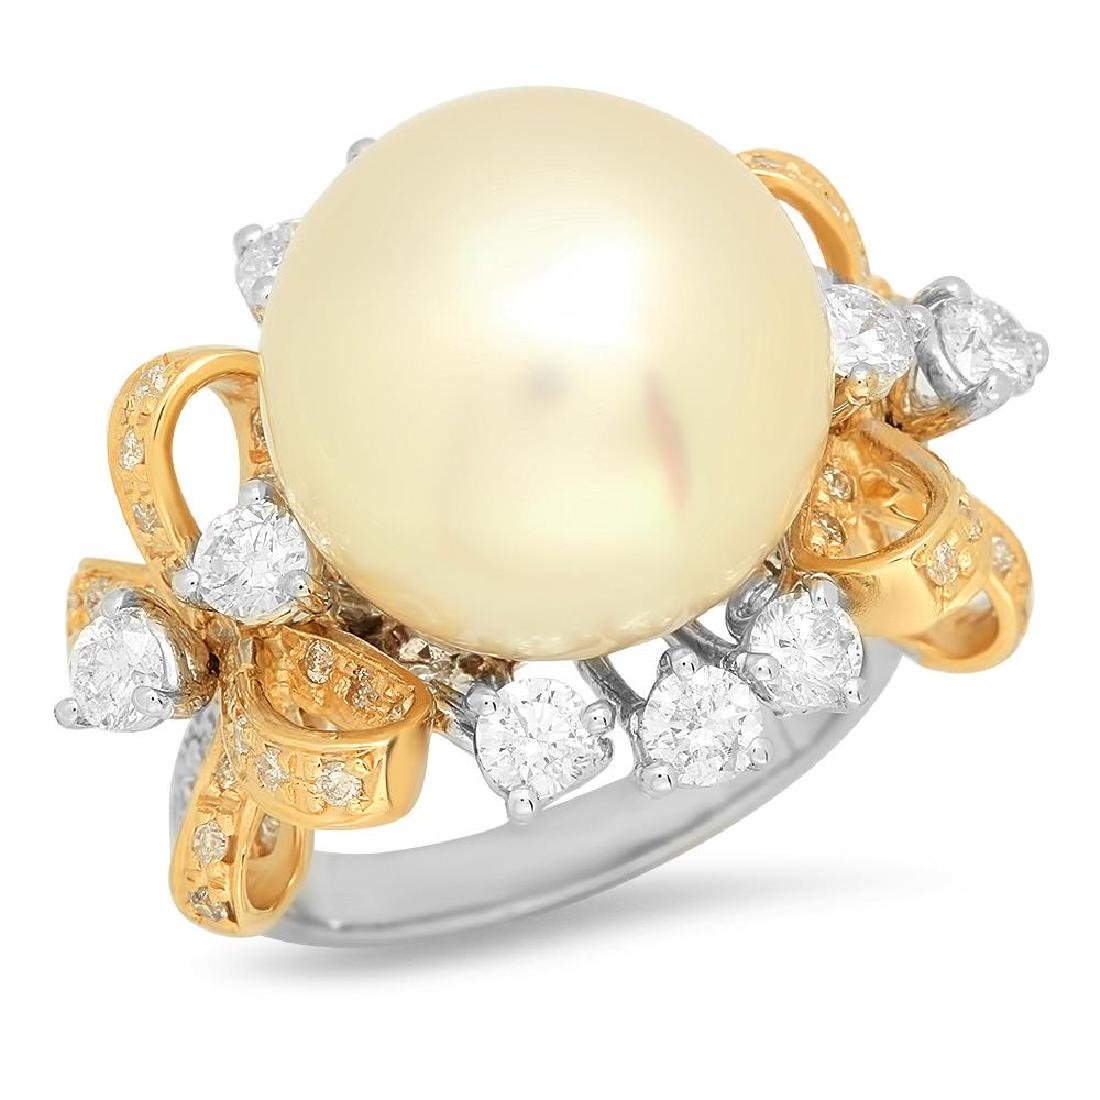 14K Gold 15mm South Sea Pearl 2.26cts Diamond Ring